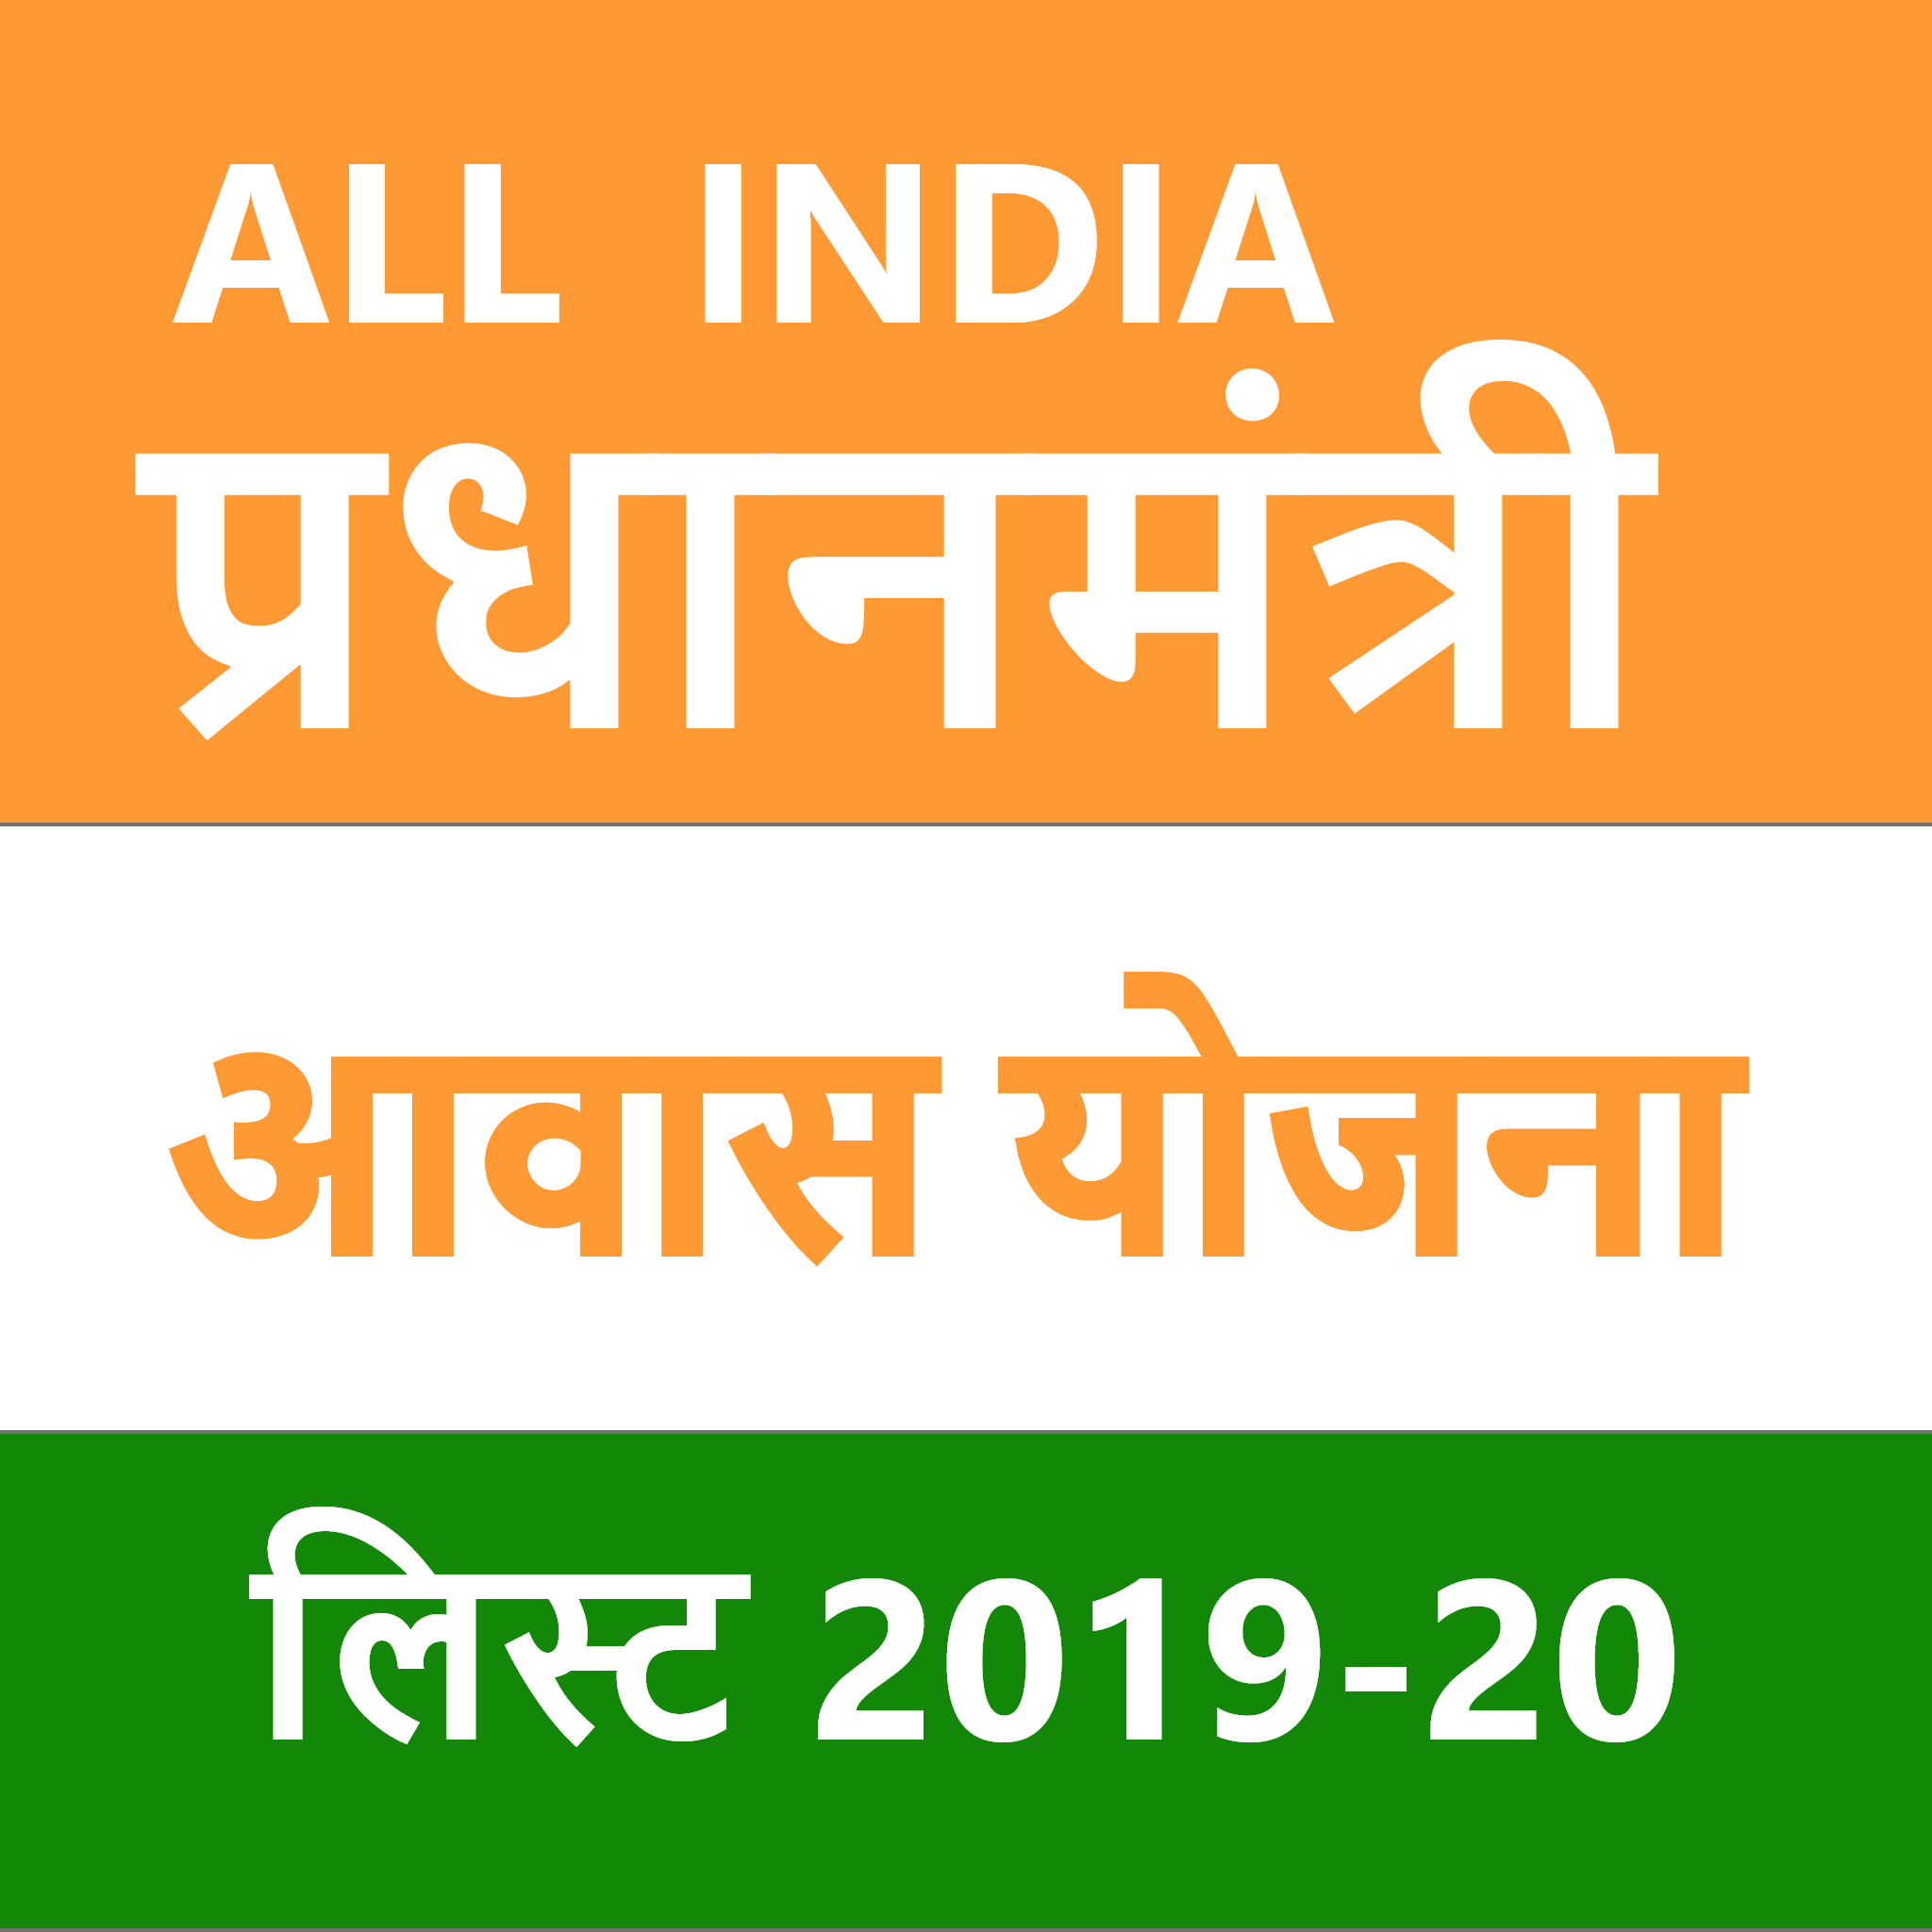 pradhan mantri awas yojana list 2019-20 (All India) APK